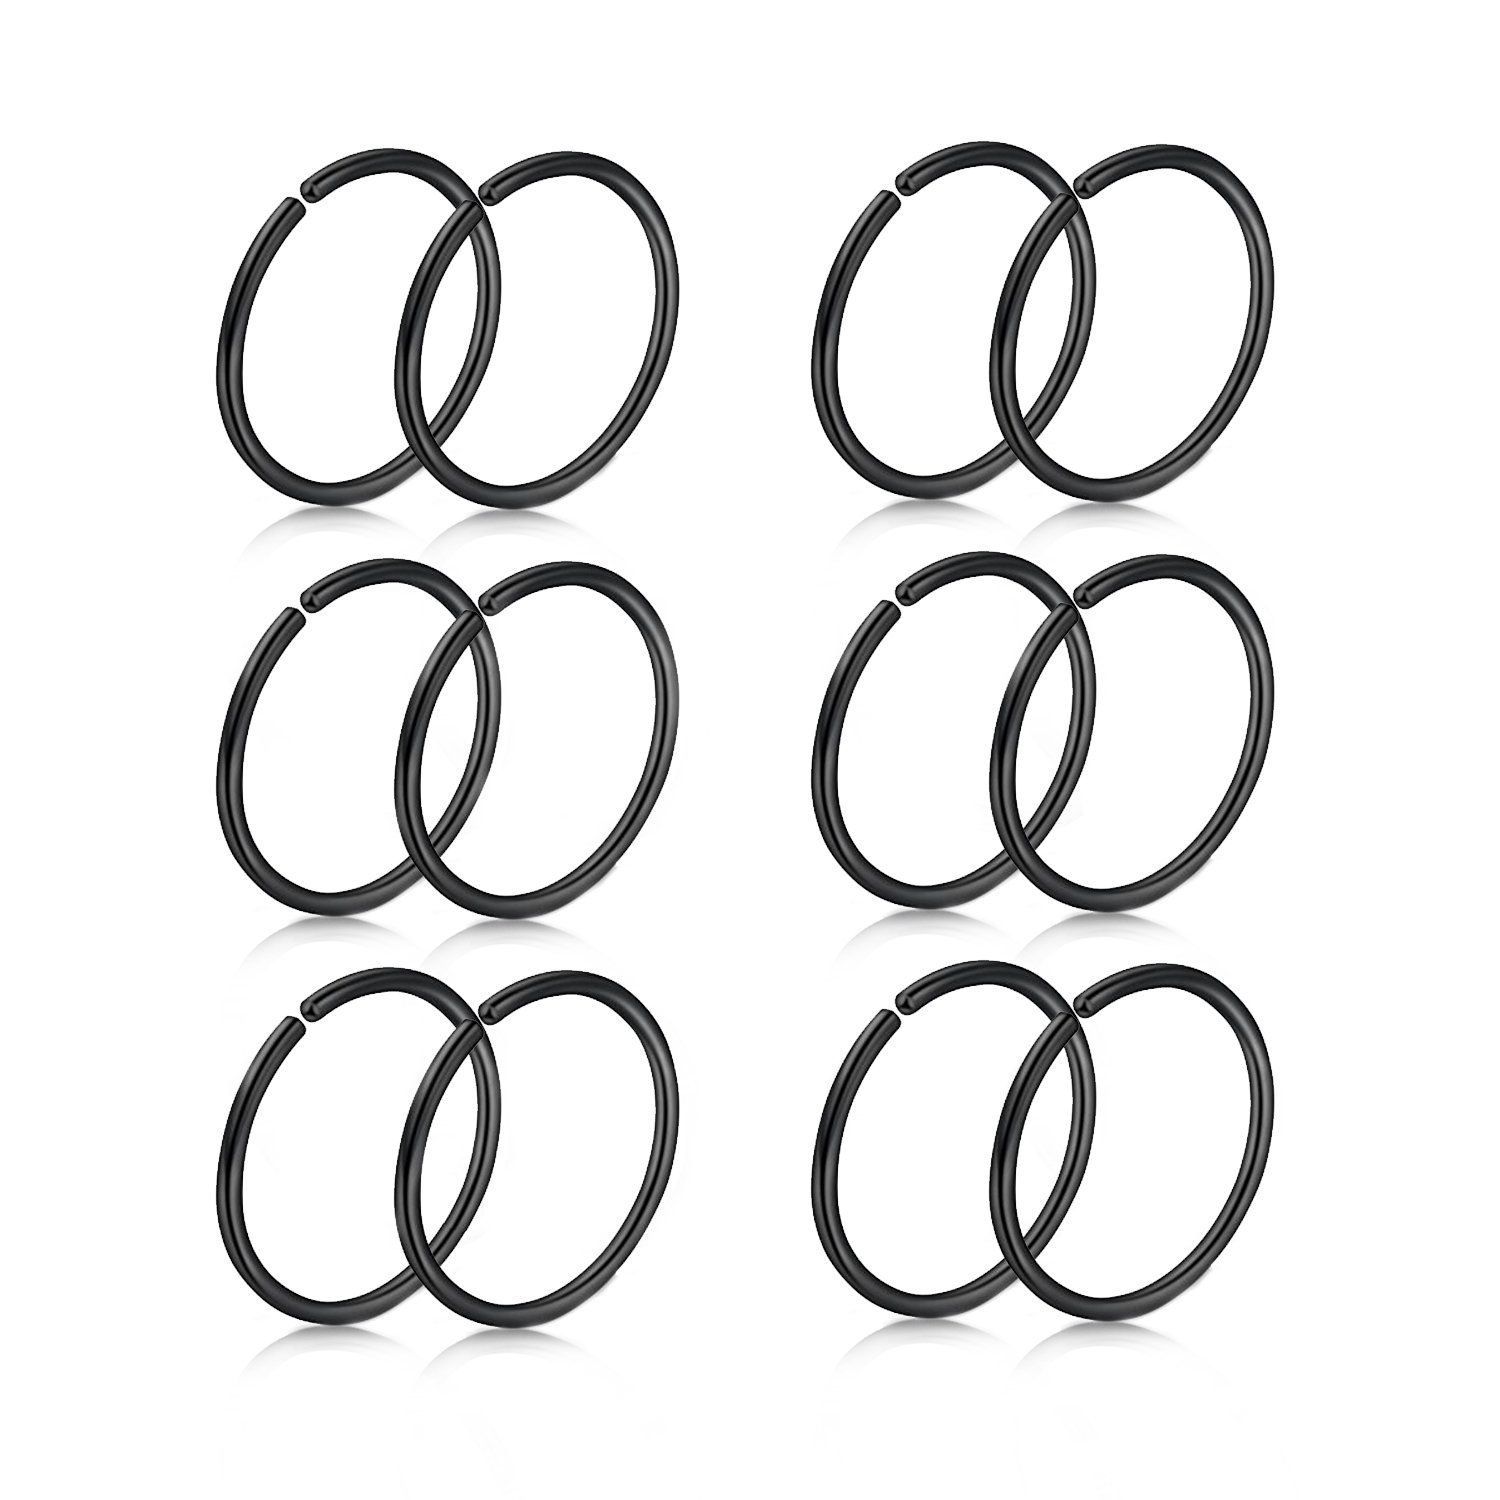 Briana Williams Fake Nose Ring Hoop Septum Lip Helix Cartilage Tragus Earring Clip Hoop Rings- 12pcs 20G 6mm 8mm 10mm 12mm Surgical Steel Faux Body Piercing Jewelry XKKS-10-4